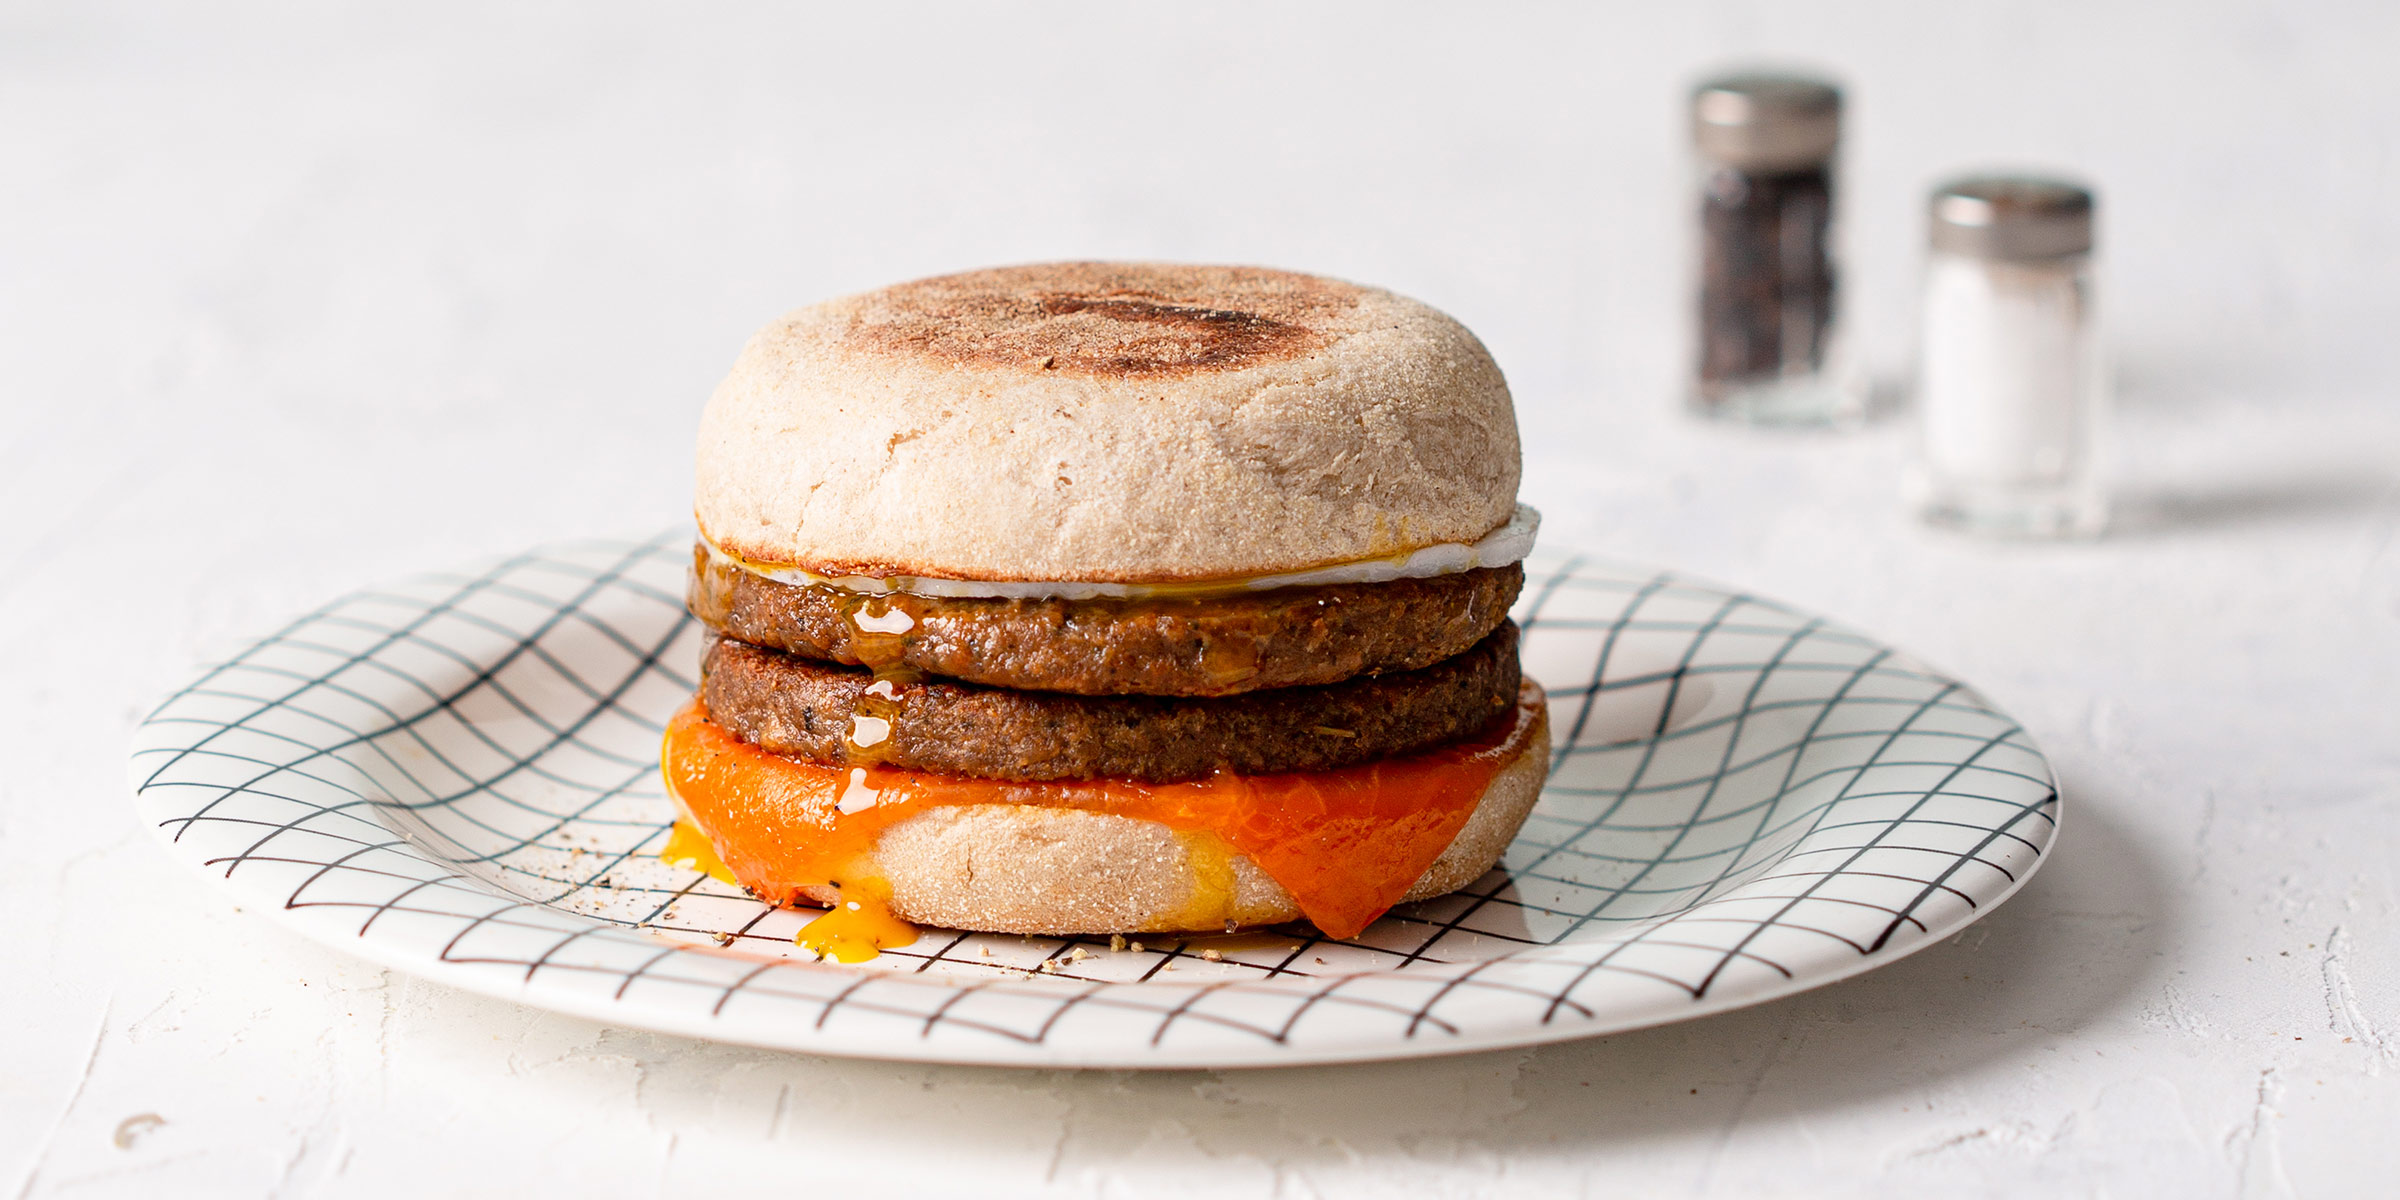 Meatless Farm sausage and egg McBluffin